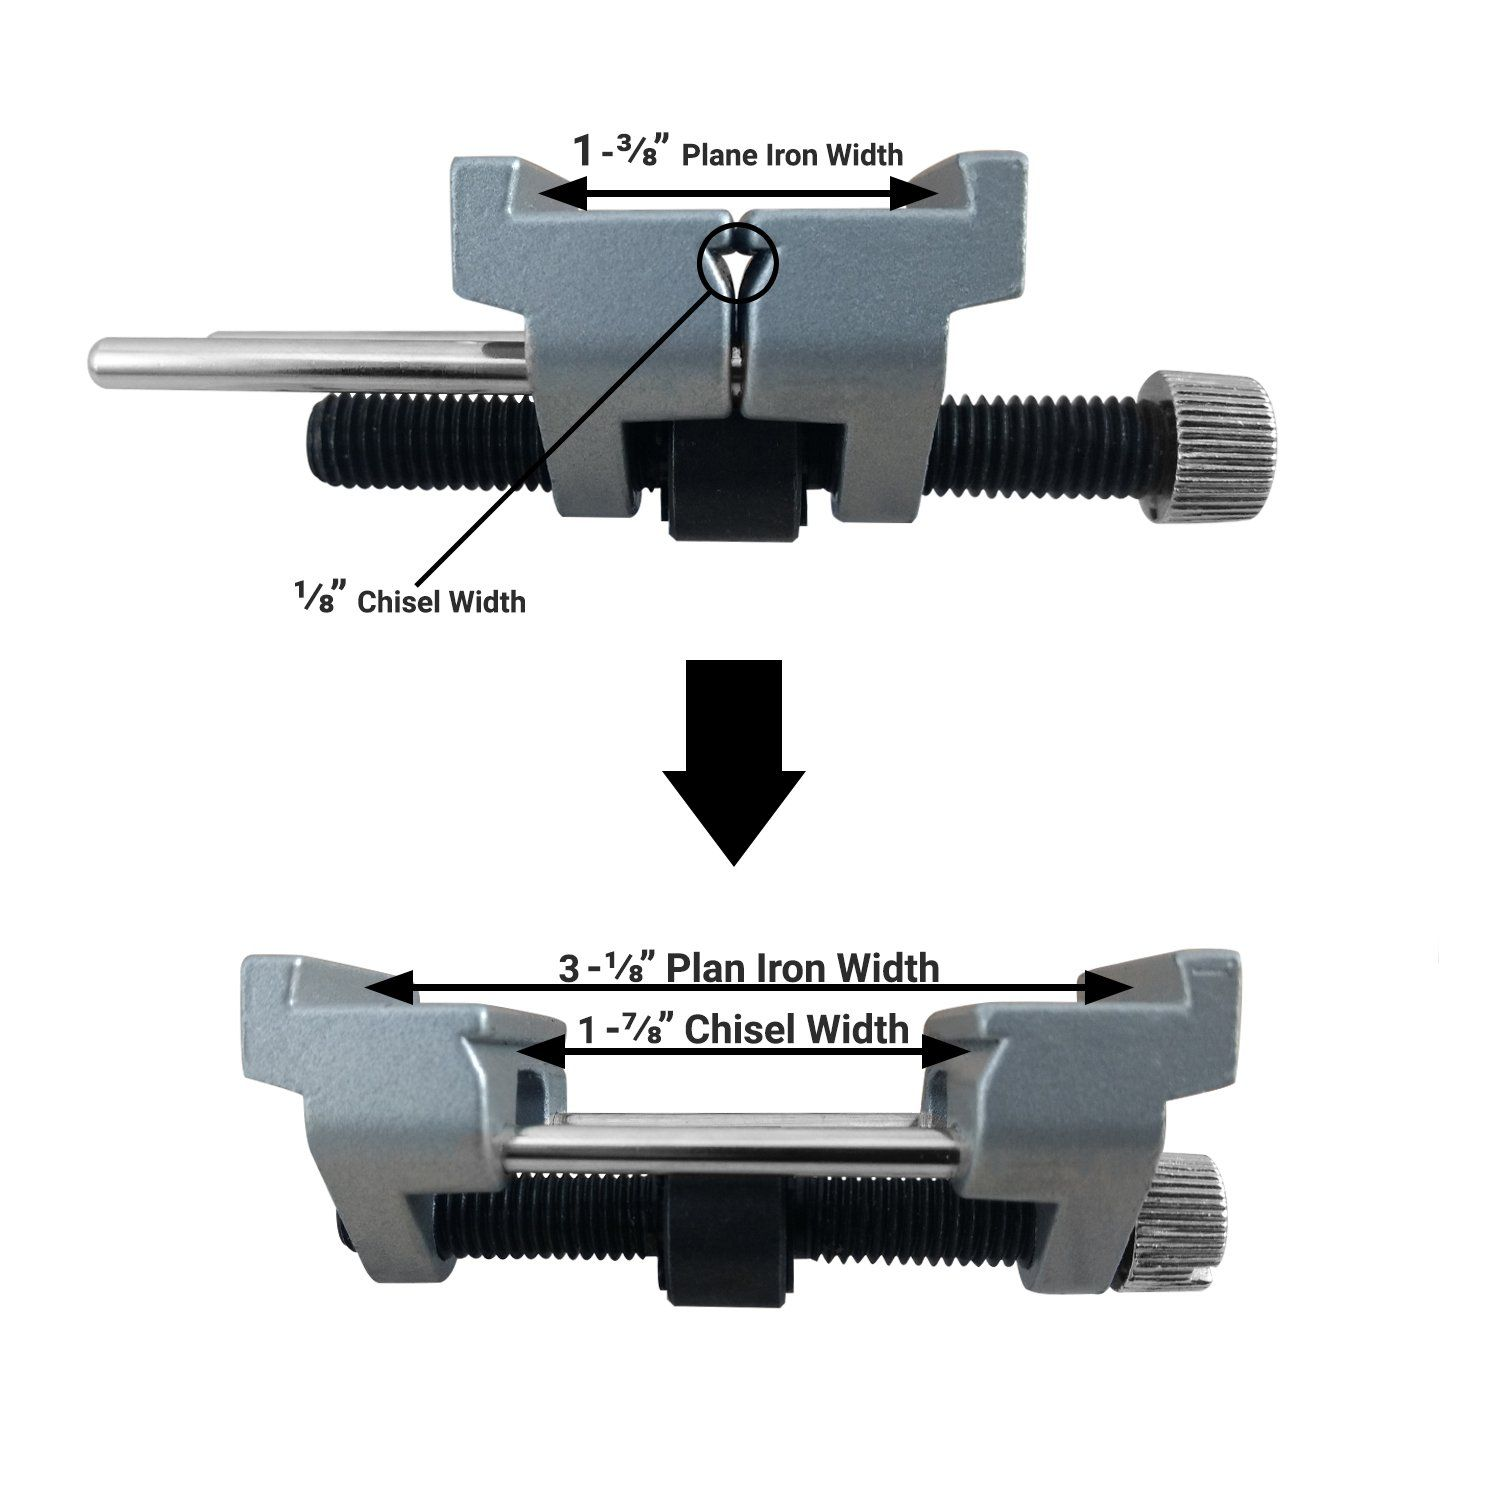 "Fits Planer Blades 1-3//8/"" to 3-1//8/"" ATLIN Honing Guide Fits Chisels 1//8/"" to 1-7//8/"""